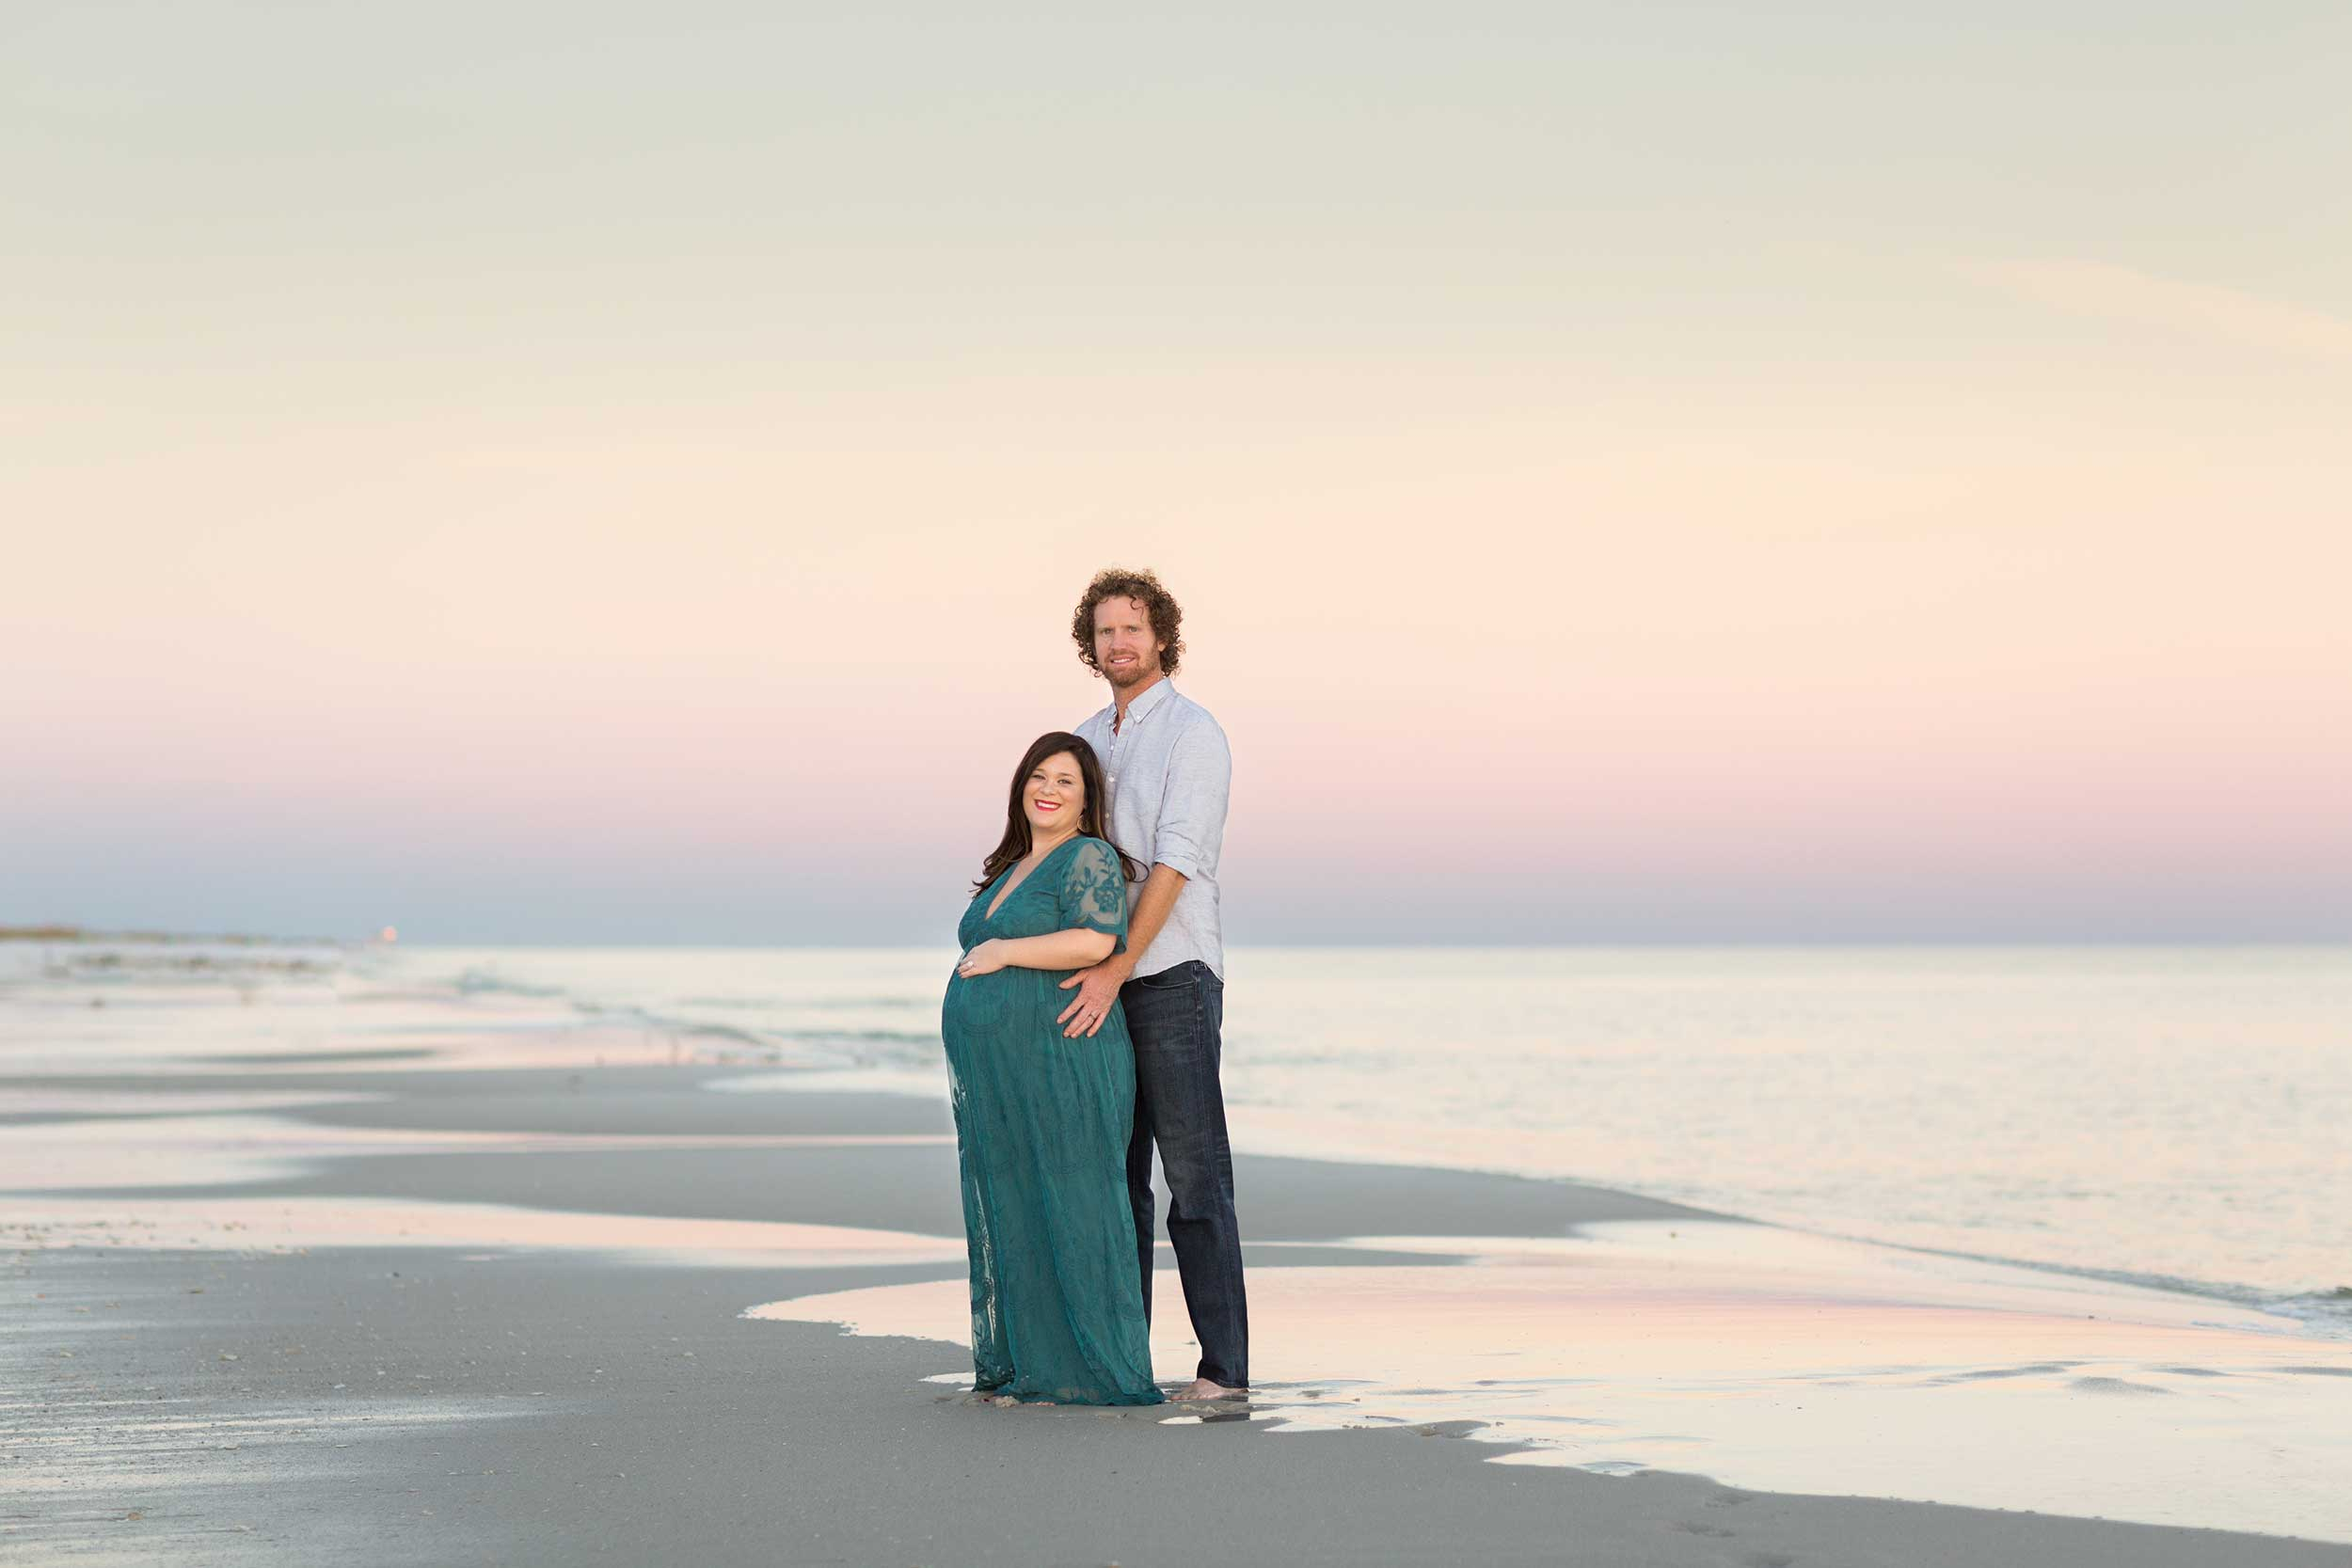 pensacola beach photographer captures image of pregnancy